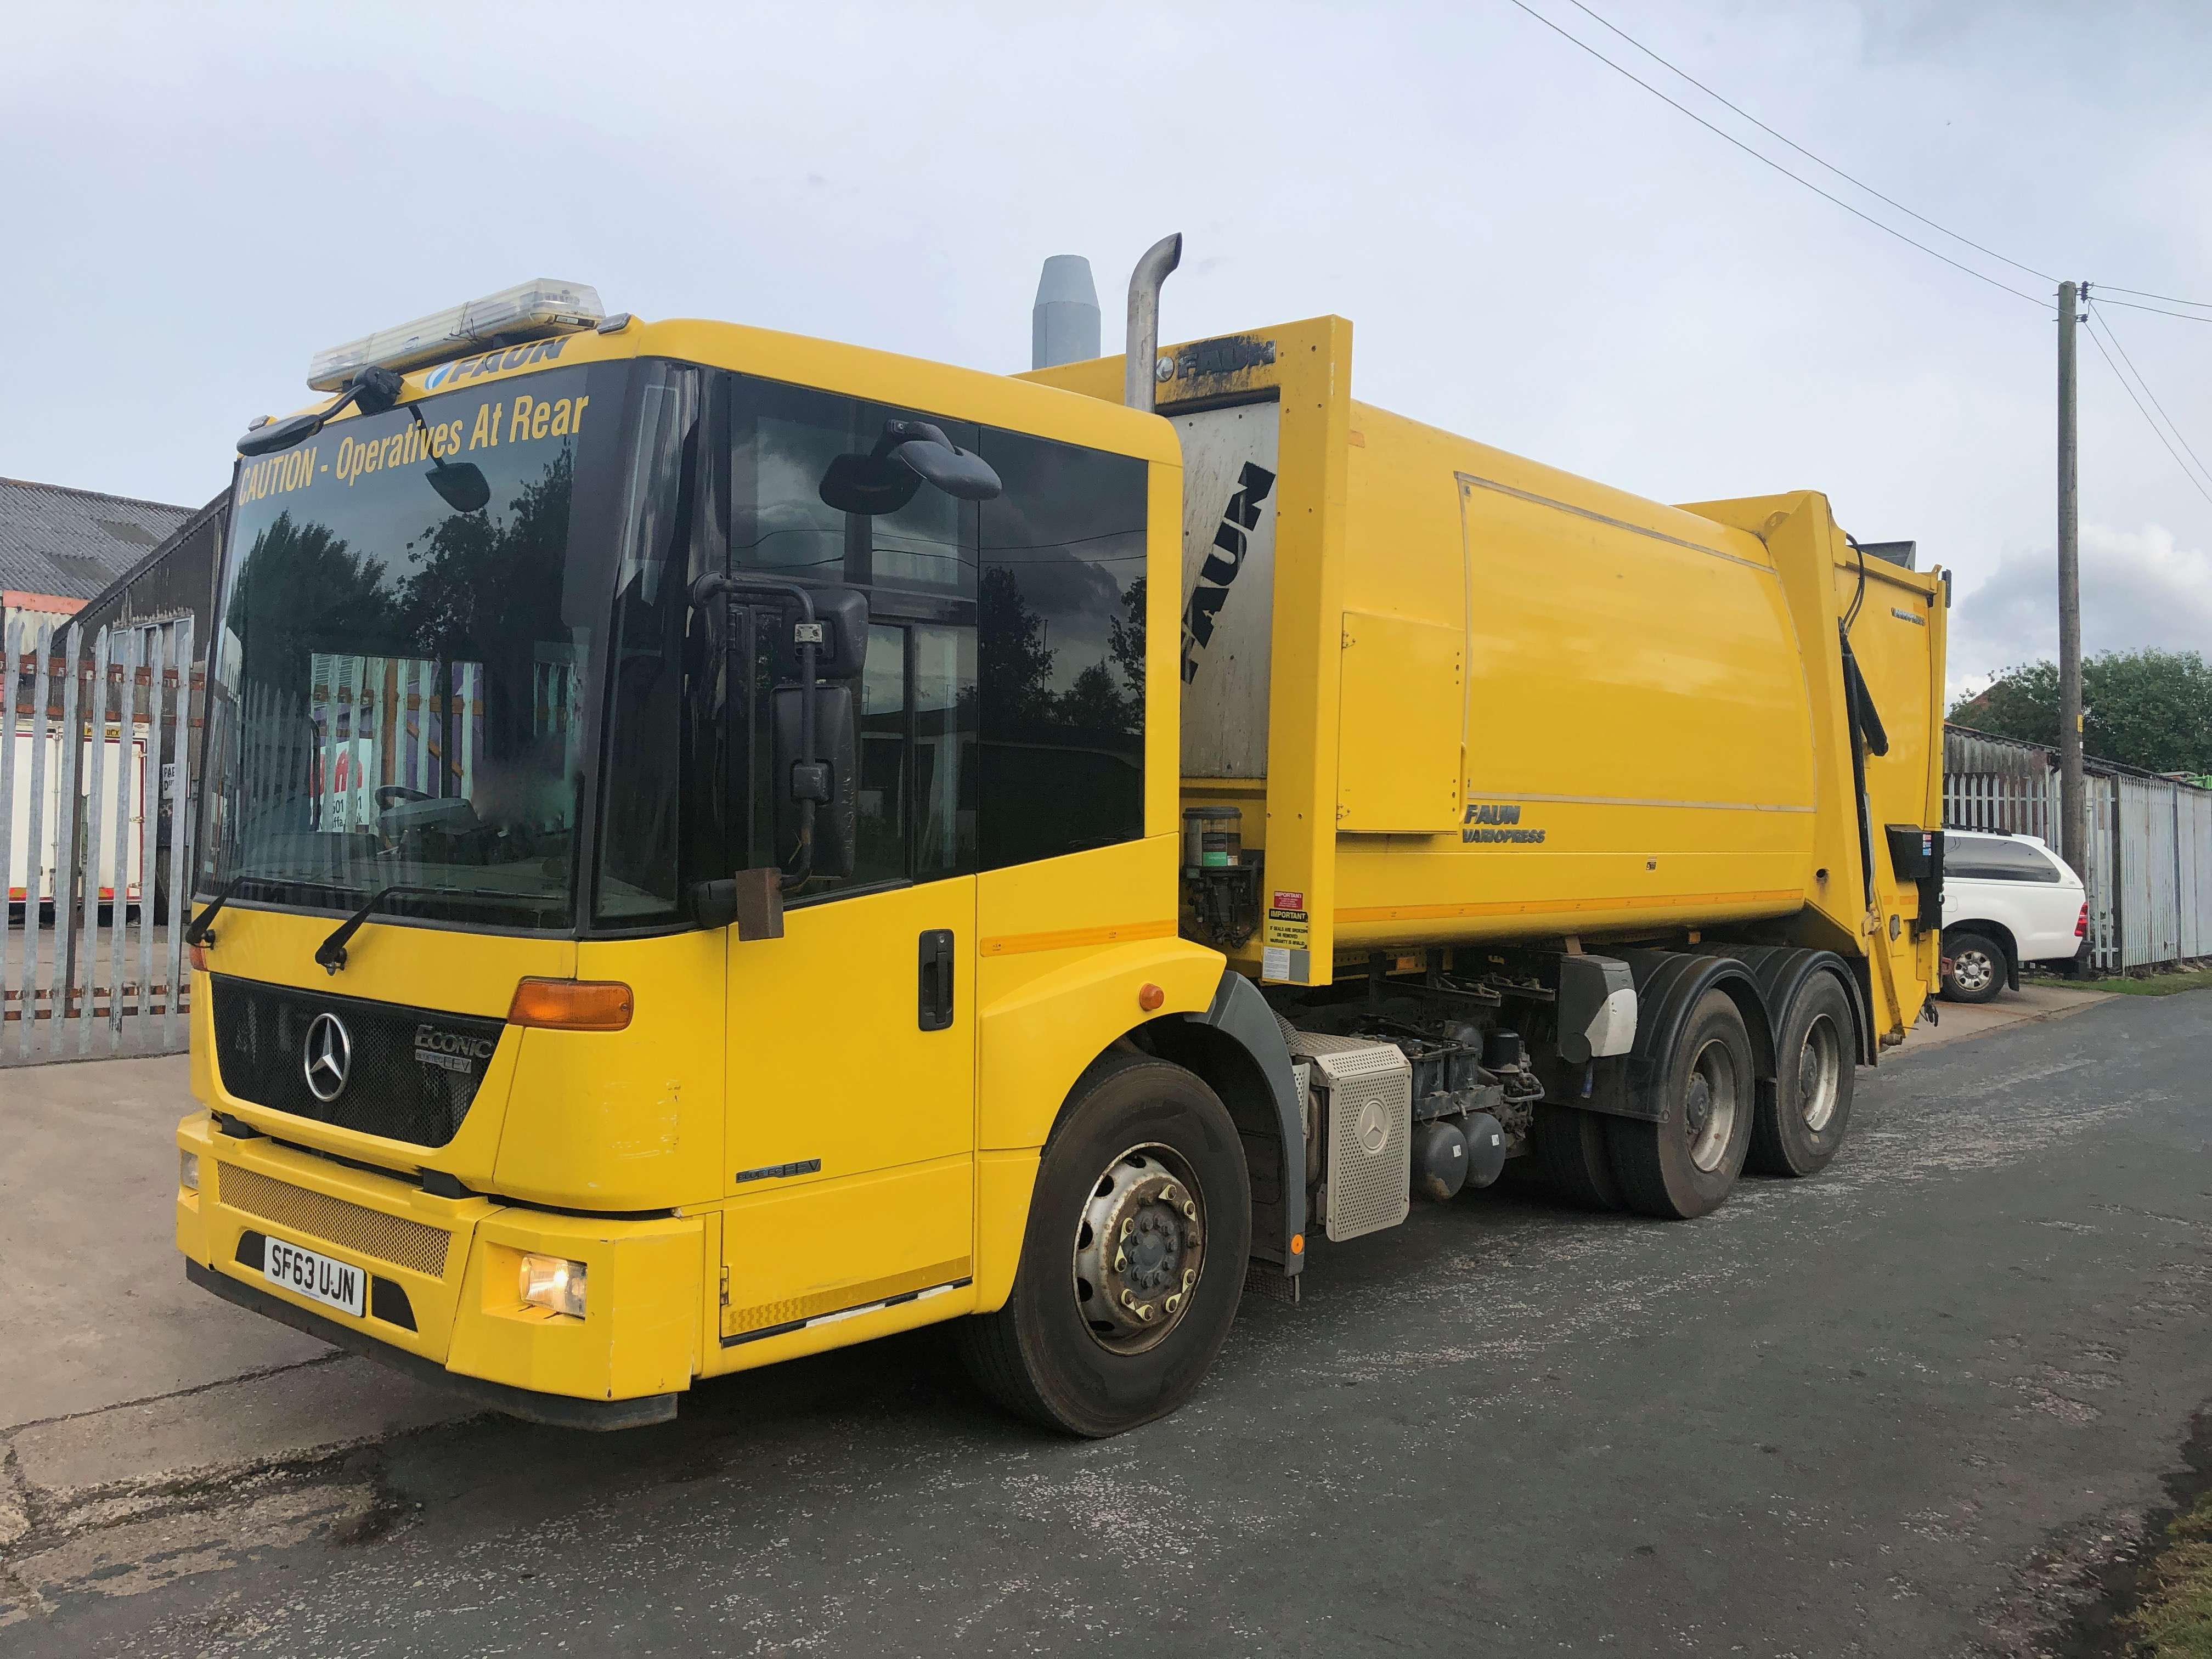 2013 Mercedes Econic refuse truck for sale